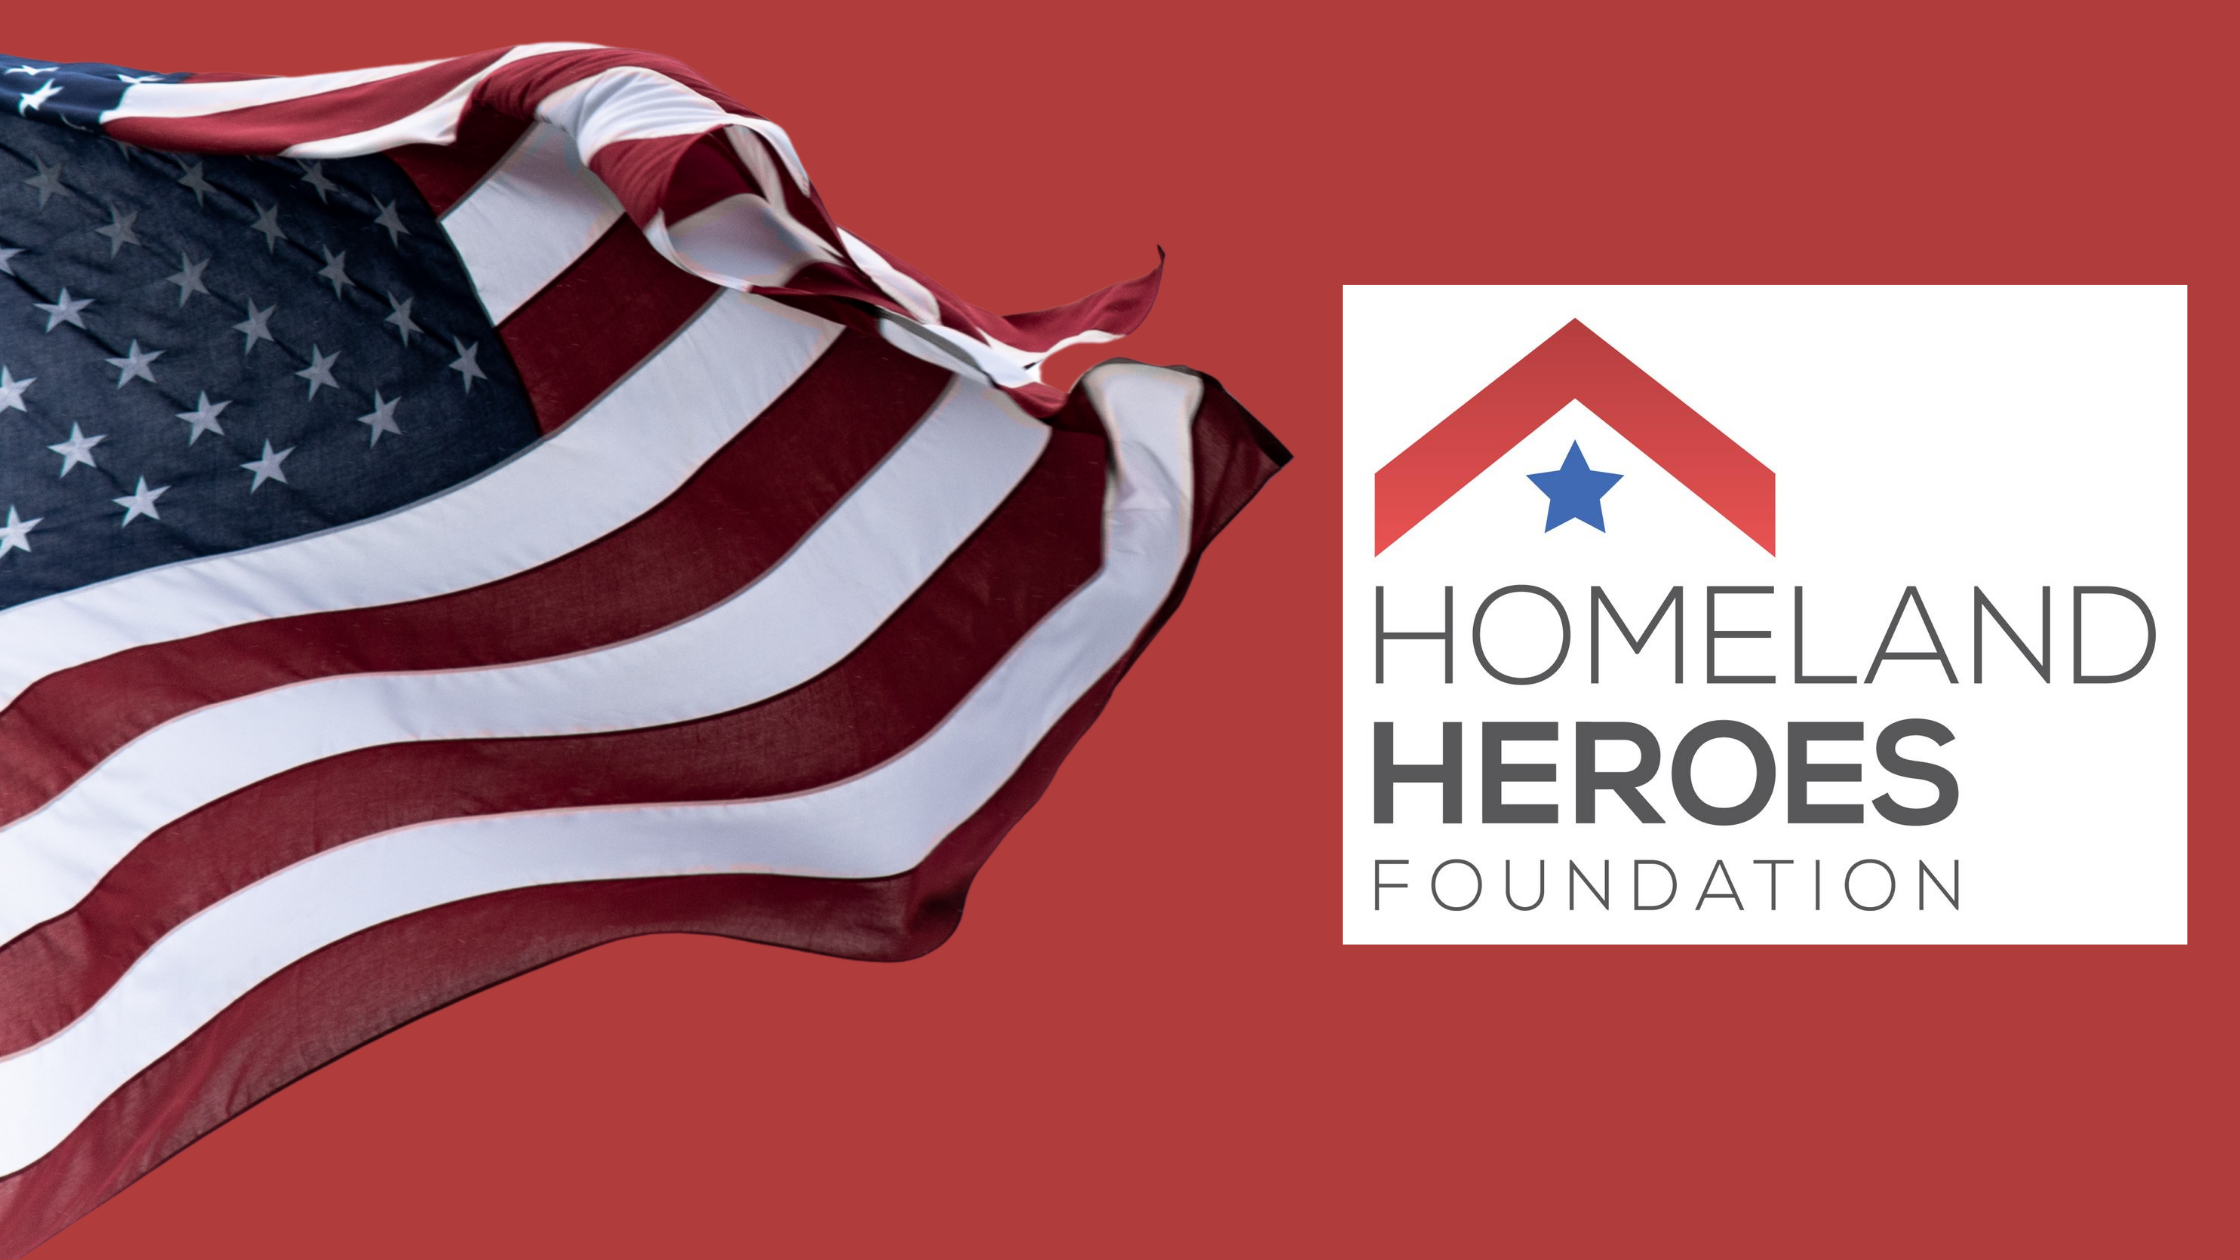 picture of american flag and homeland heroes foundation logo